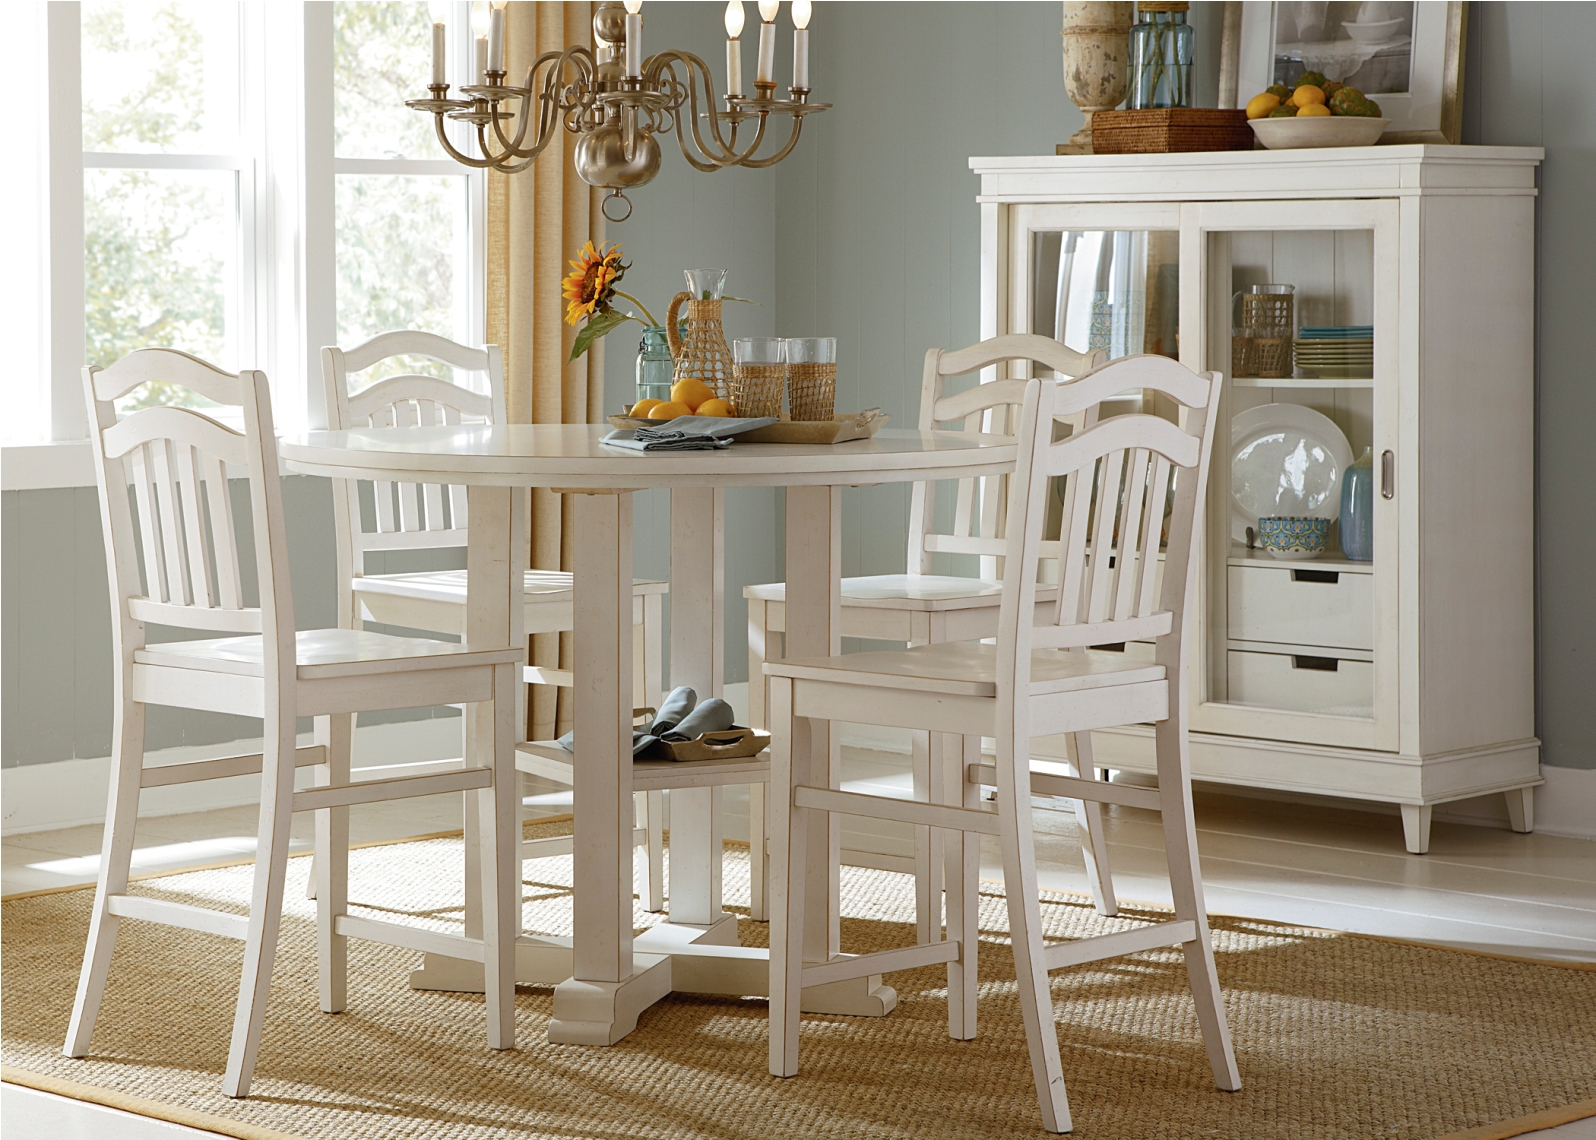 Liberty Furniture Summerhill 5 Piece Gathering Dining Set